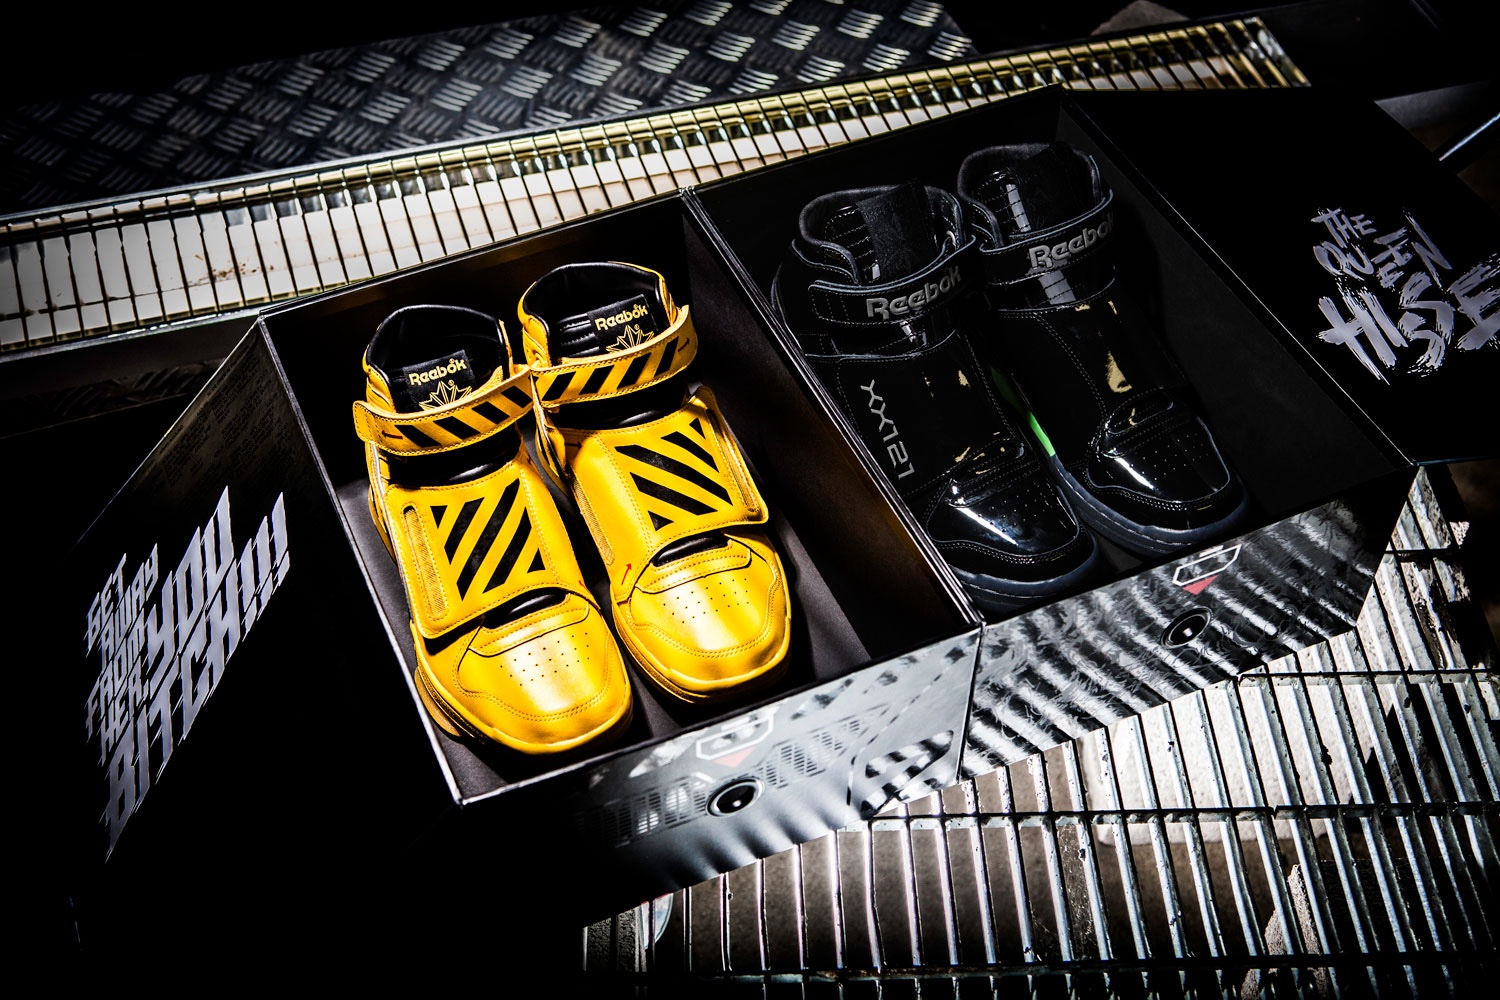 reebok-alien-stomper, reebok-alien-stomper-final-battle-pack, alien-stomper-powerloader, reebok-alien-stomper-powerloader, alien-stomper-queen, reebok-alien-stomper-queen, alien-day, sneakers-alien, sneakers-reebok-alien, sneakers-ellen-ripley, sneakers-reebok-ellen-ripley